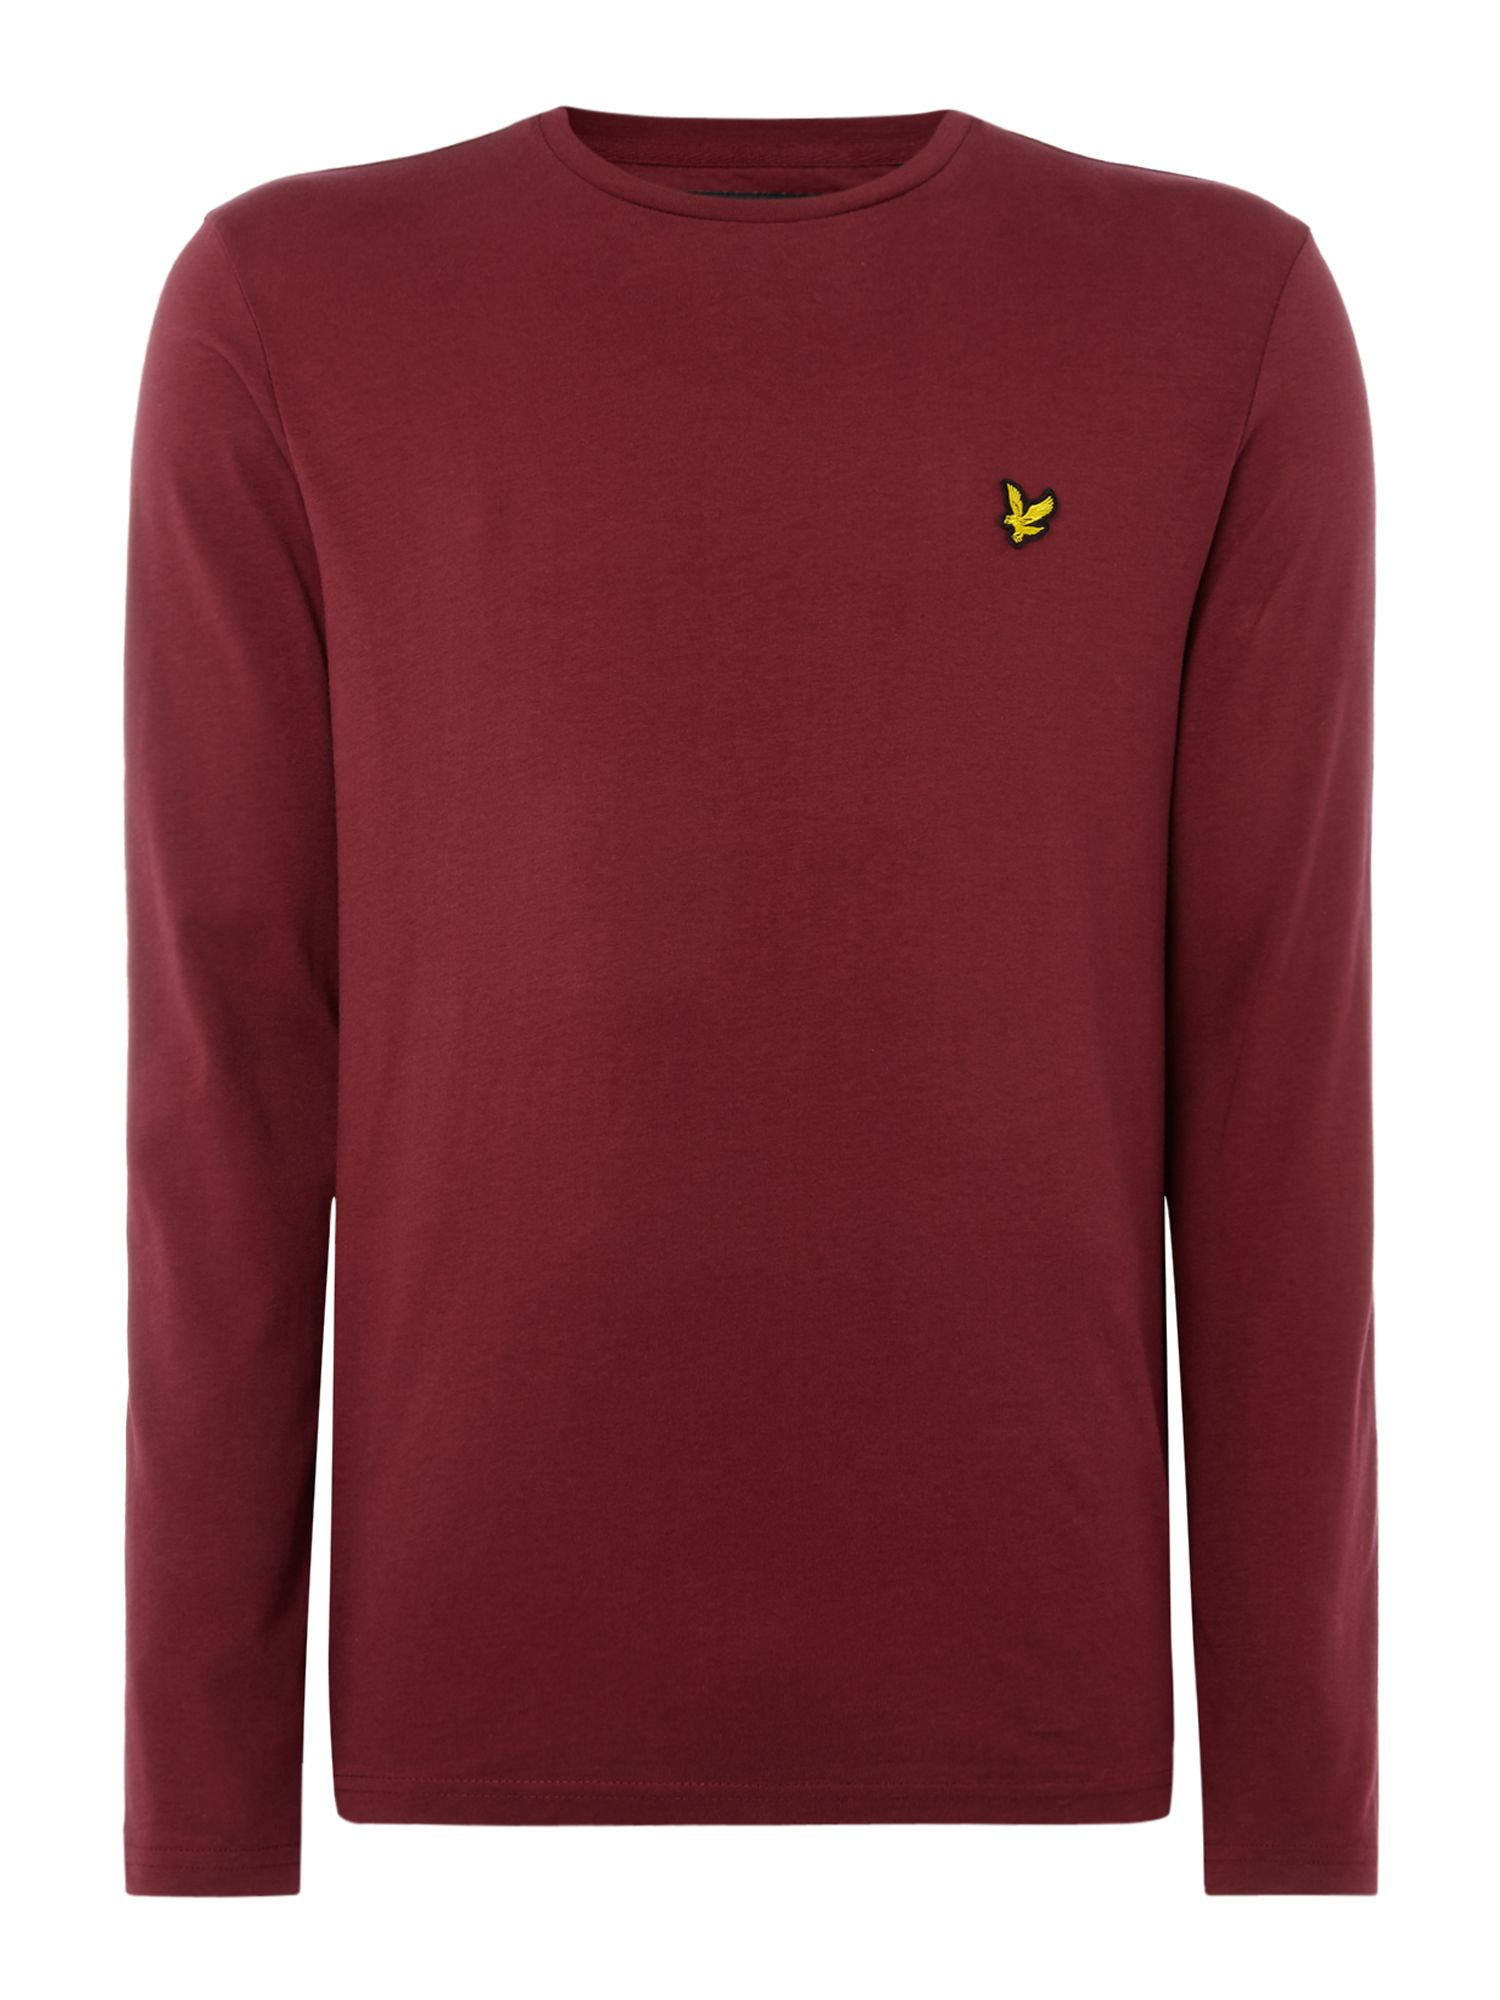 Men's Lyle and Scott Long Sleeve Classic Crew Neck T-Shirt, Claret